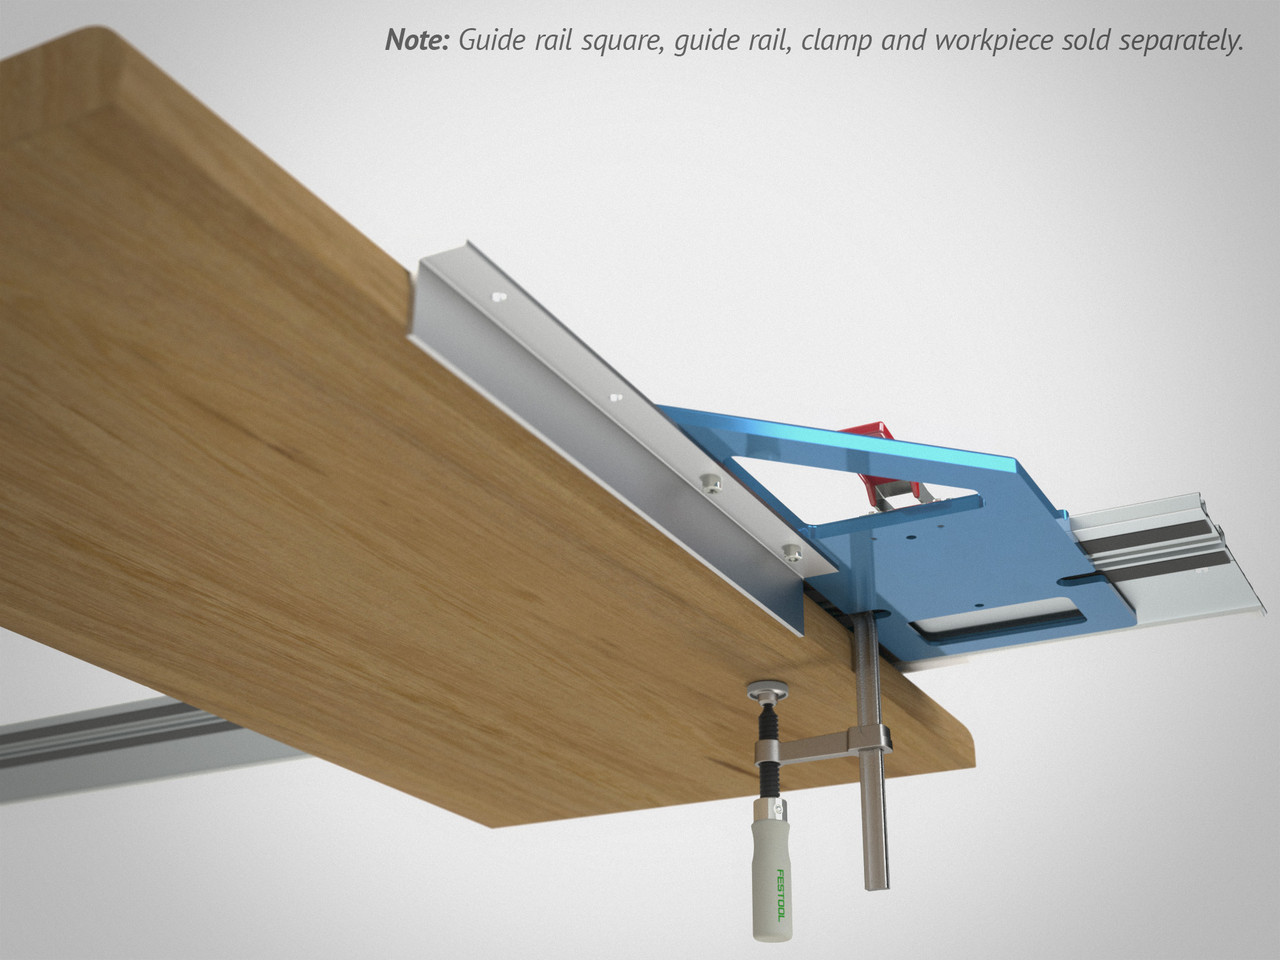 The Long Angle Accessory is shown here, attached to a GRS-16. Use it to effectively extend the reference edge of your guide rail (both length and depth projection).